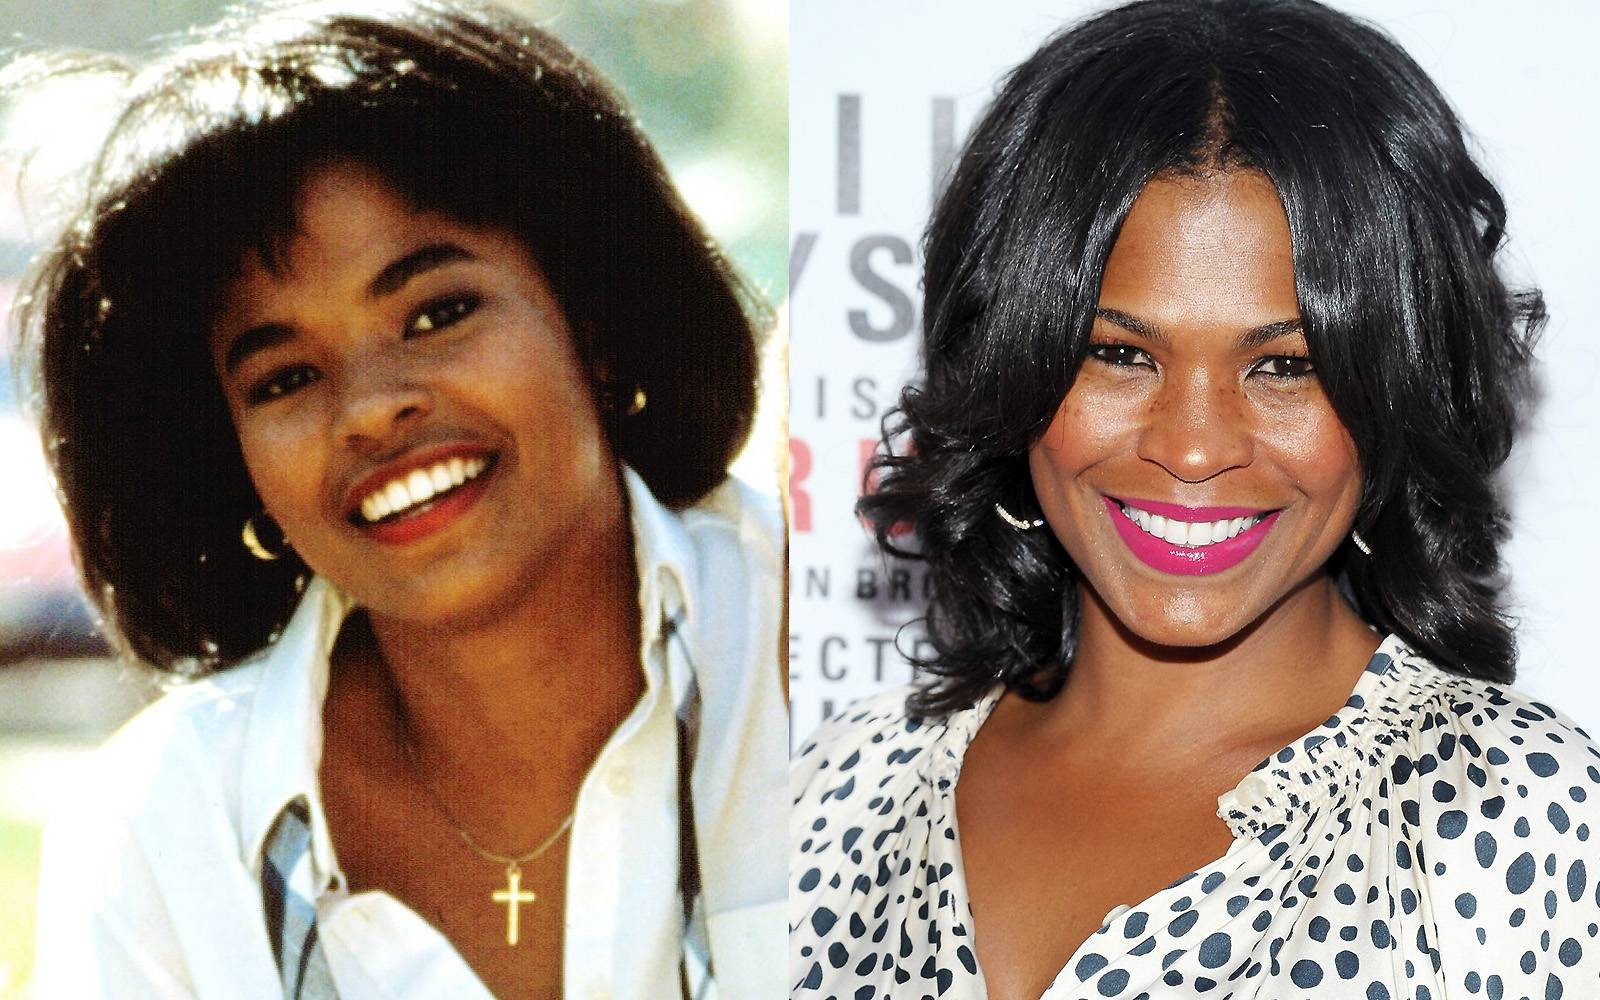 Nia Long - Long began her career on the soap opera Guiding Light and as Will Smith's pixie-haired girlfriend on The Fresh Prince of Bel-Air. Her style has grown with her and instead of the short bobs, the girl-next-door star is often seen with softer curls that frame her face. We can?t wait to see her in the upcoming The Best Man sequel.   (Photo: Columbia Pictures, Michael Loccisano/Getty Images)